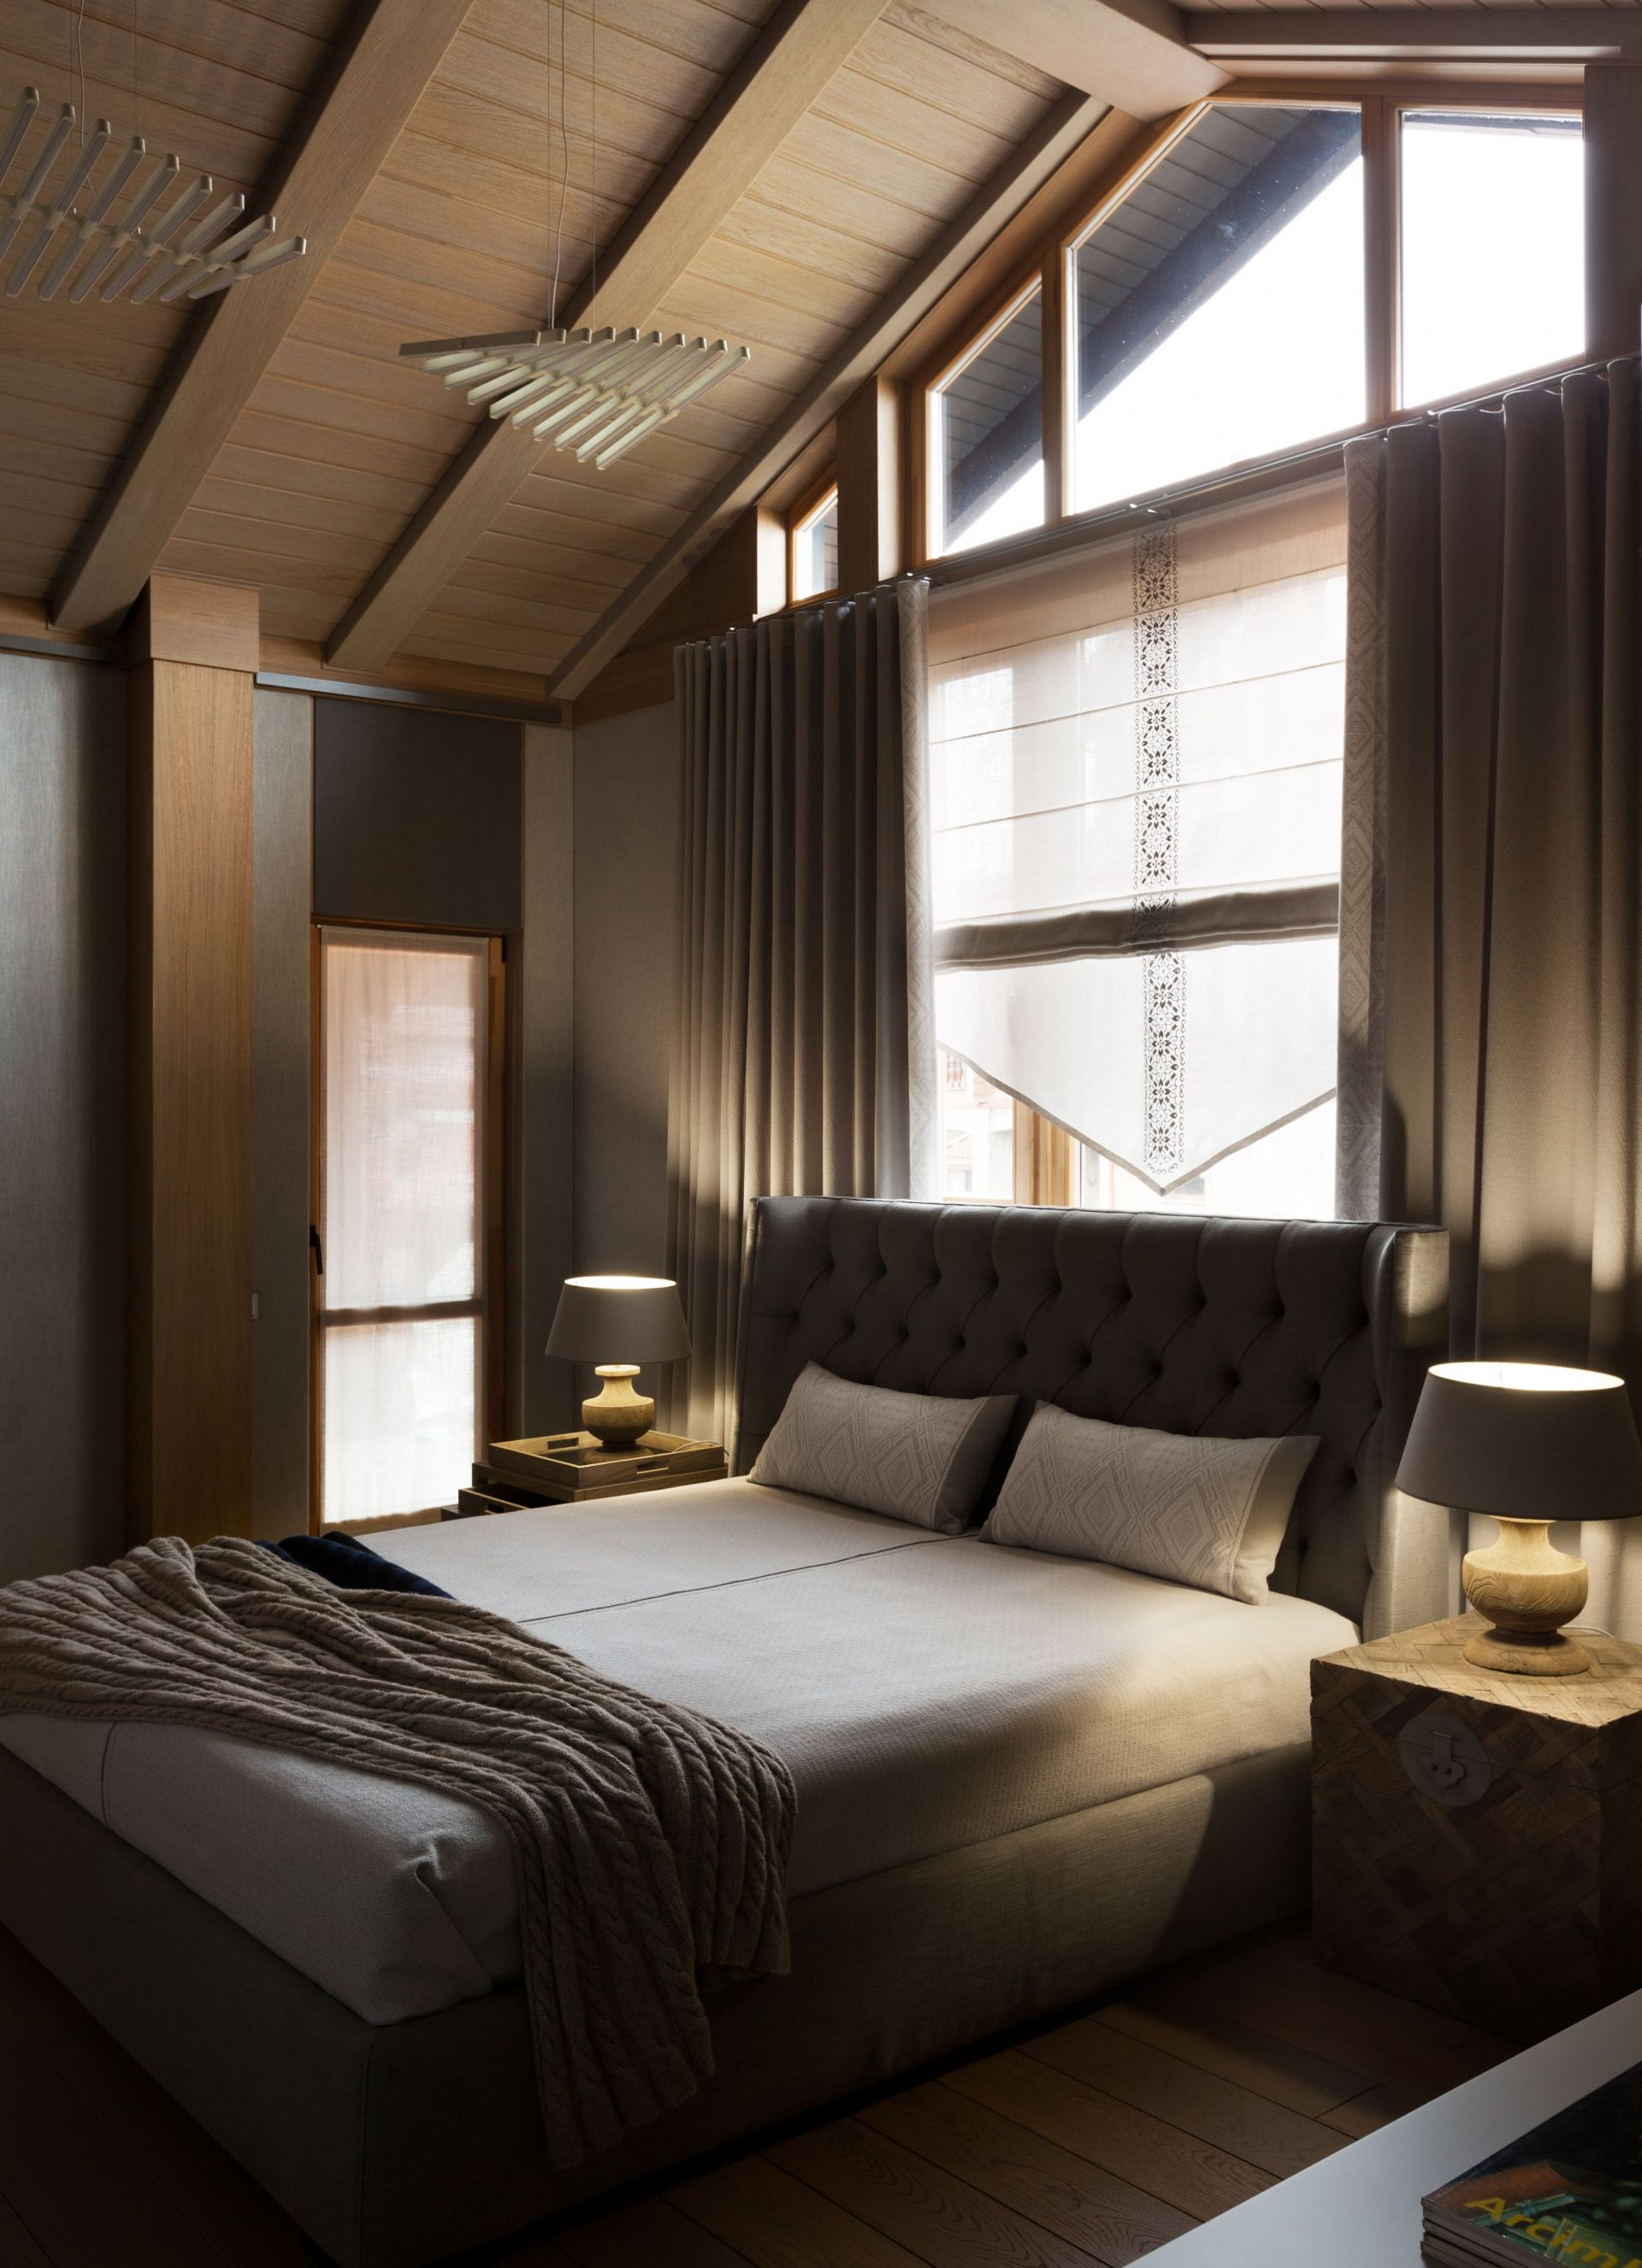 Modern bedroom with timbered interior